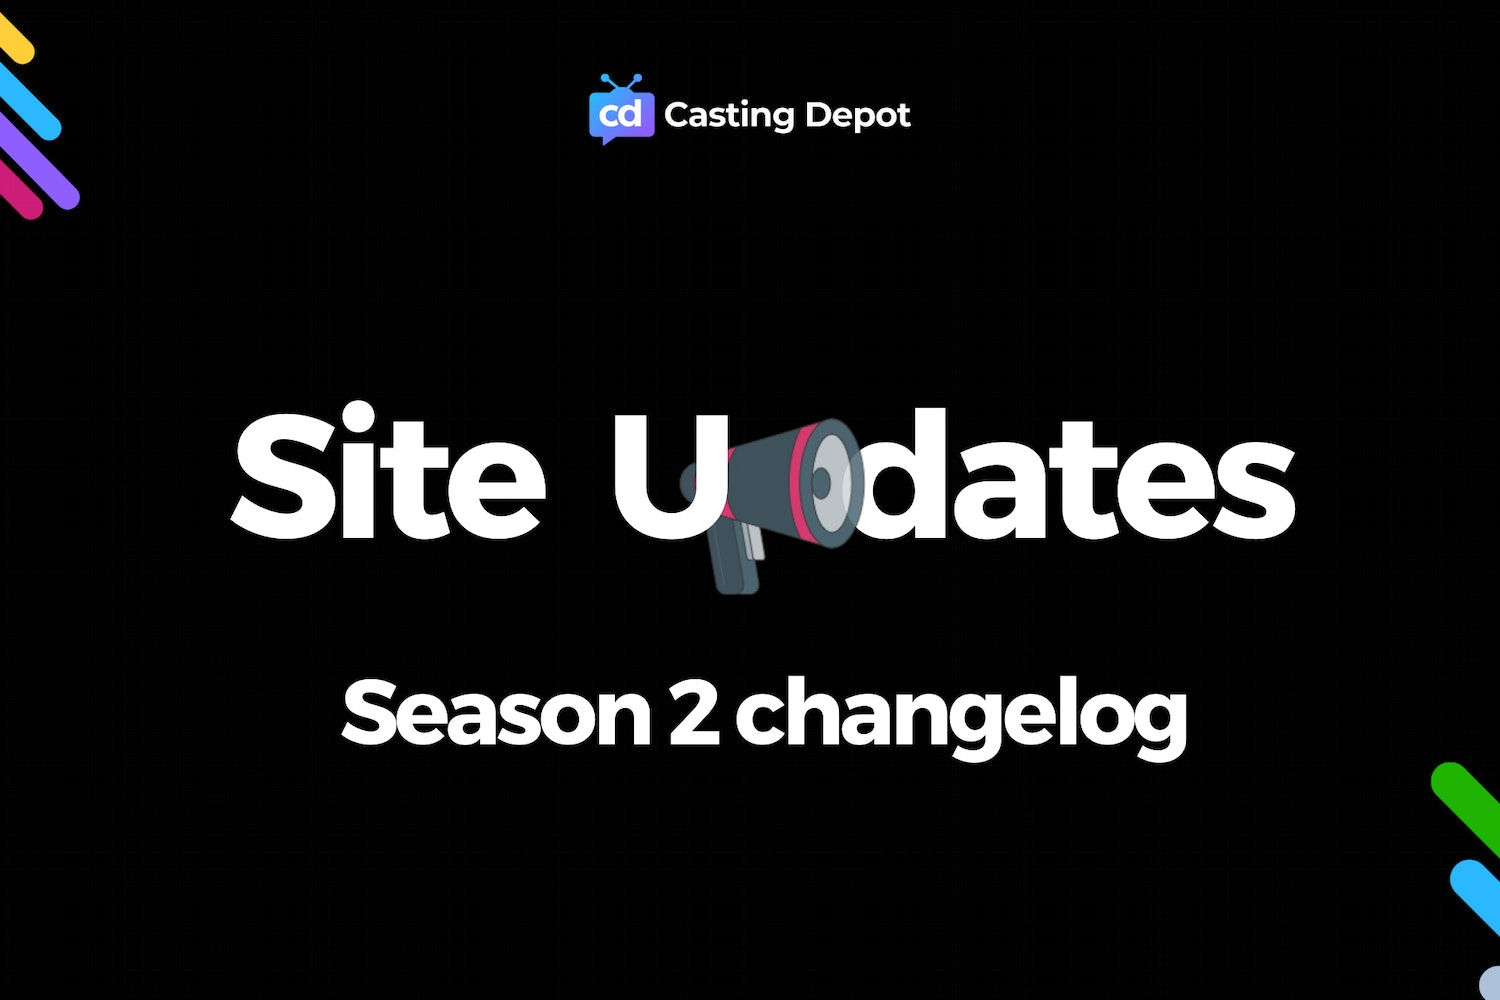 Cover Image for Season 2 of Casting Depot Released!